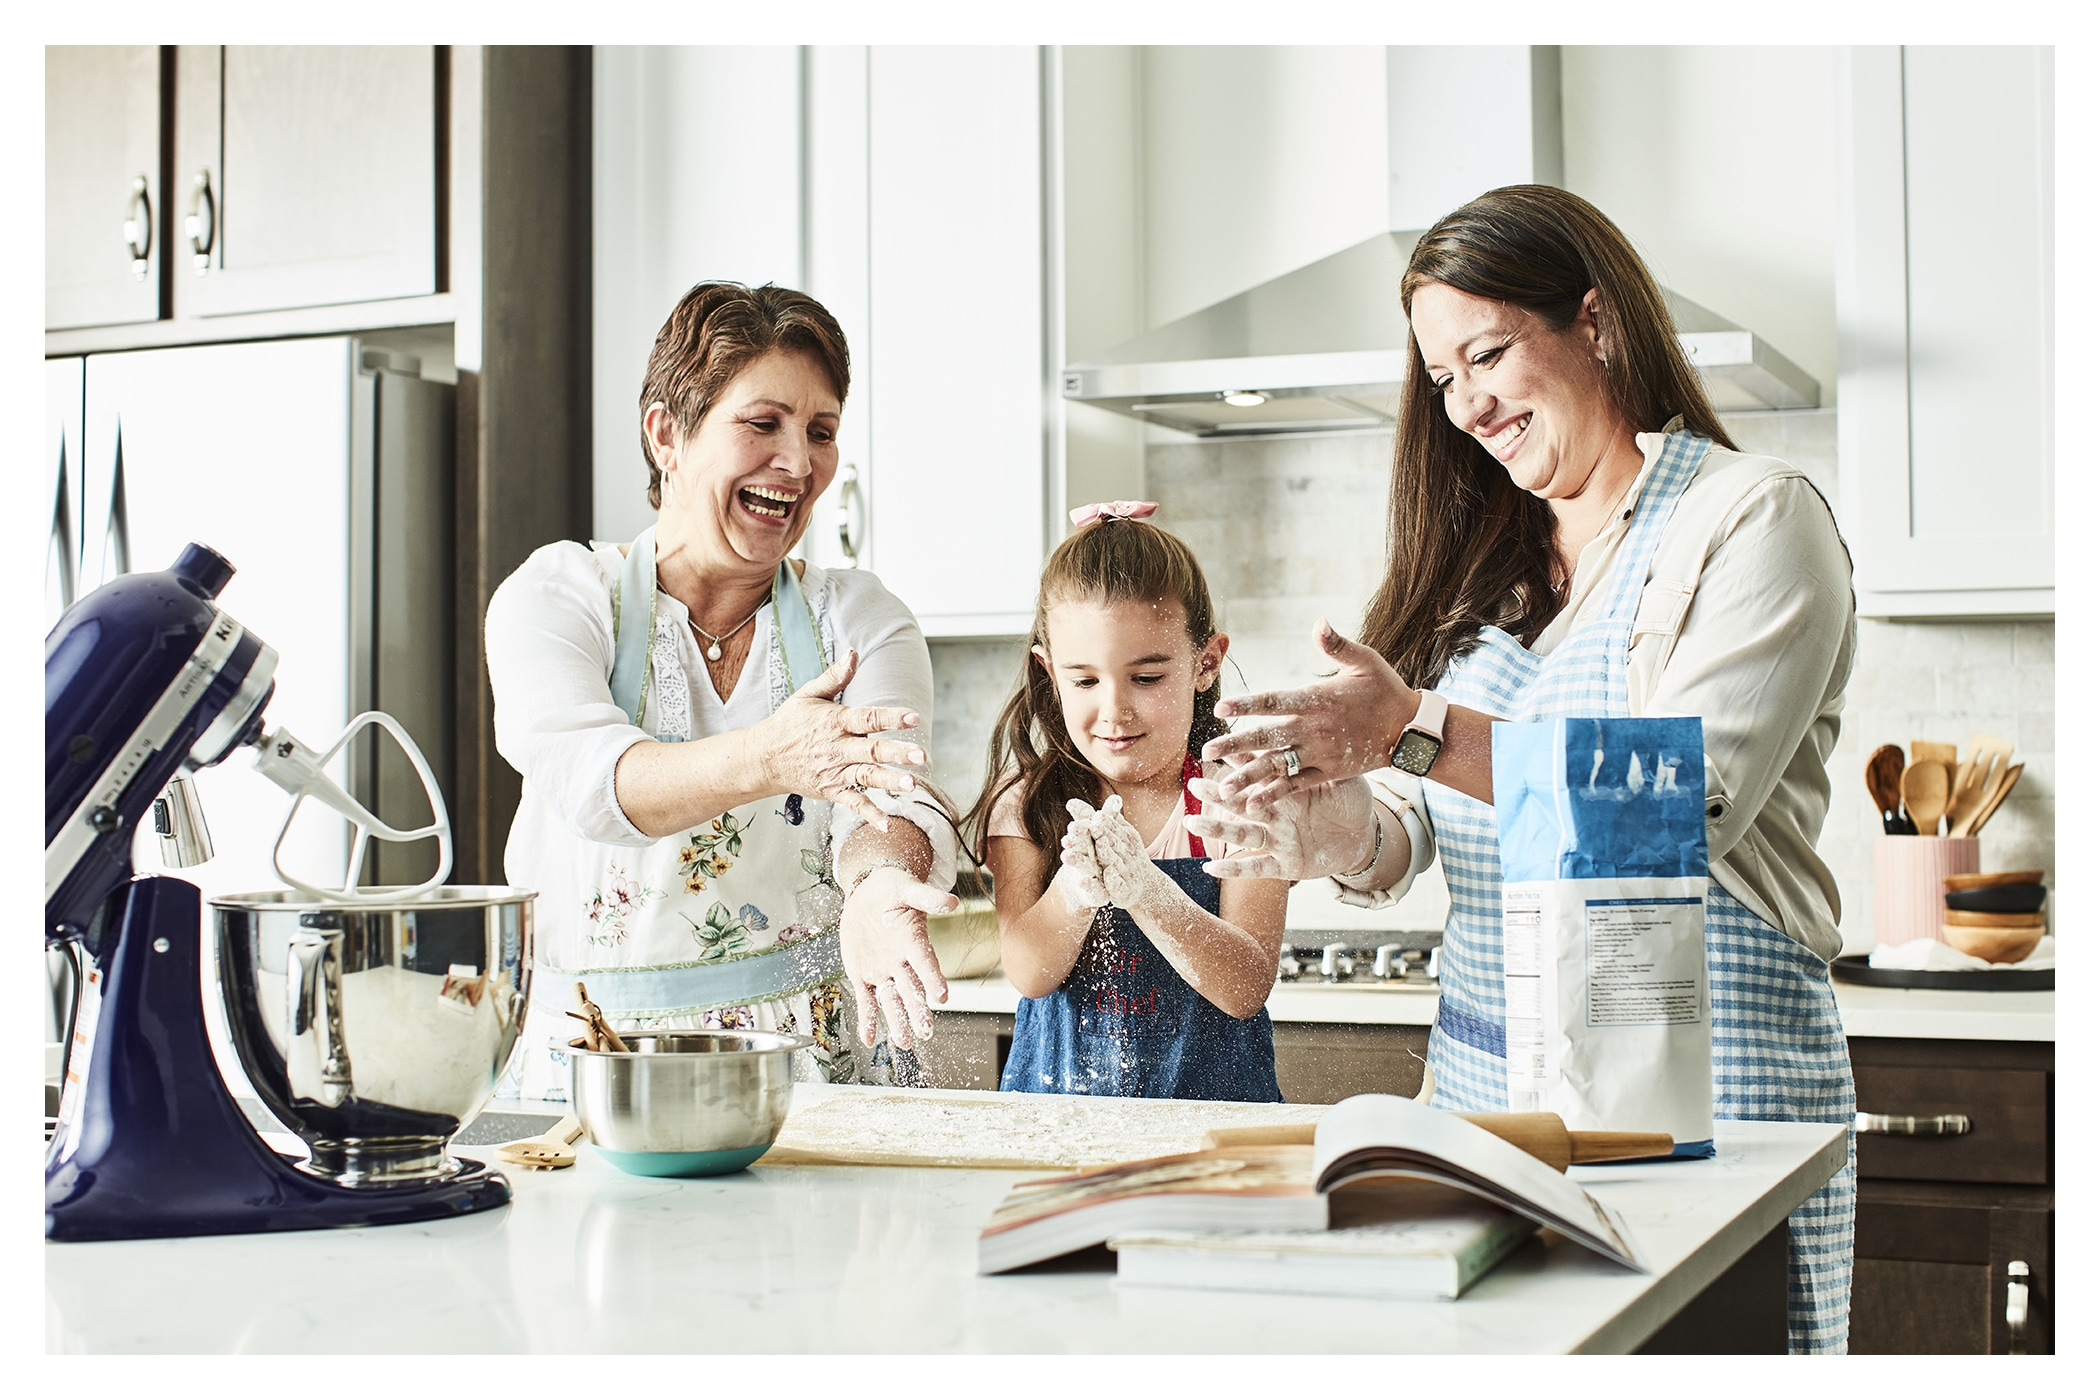 Feel the Love - Photo of a grandmother baking in the kitchen with her daughter and granddaughter